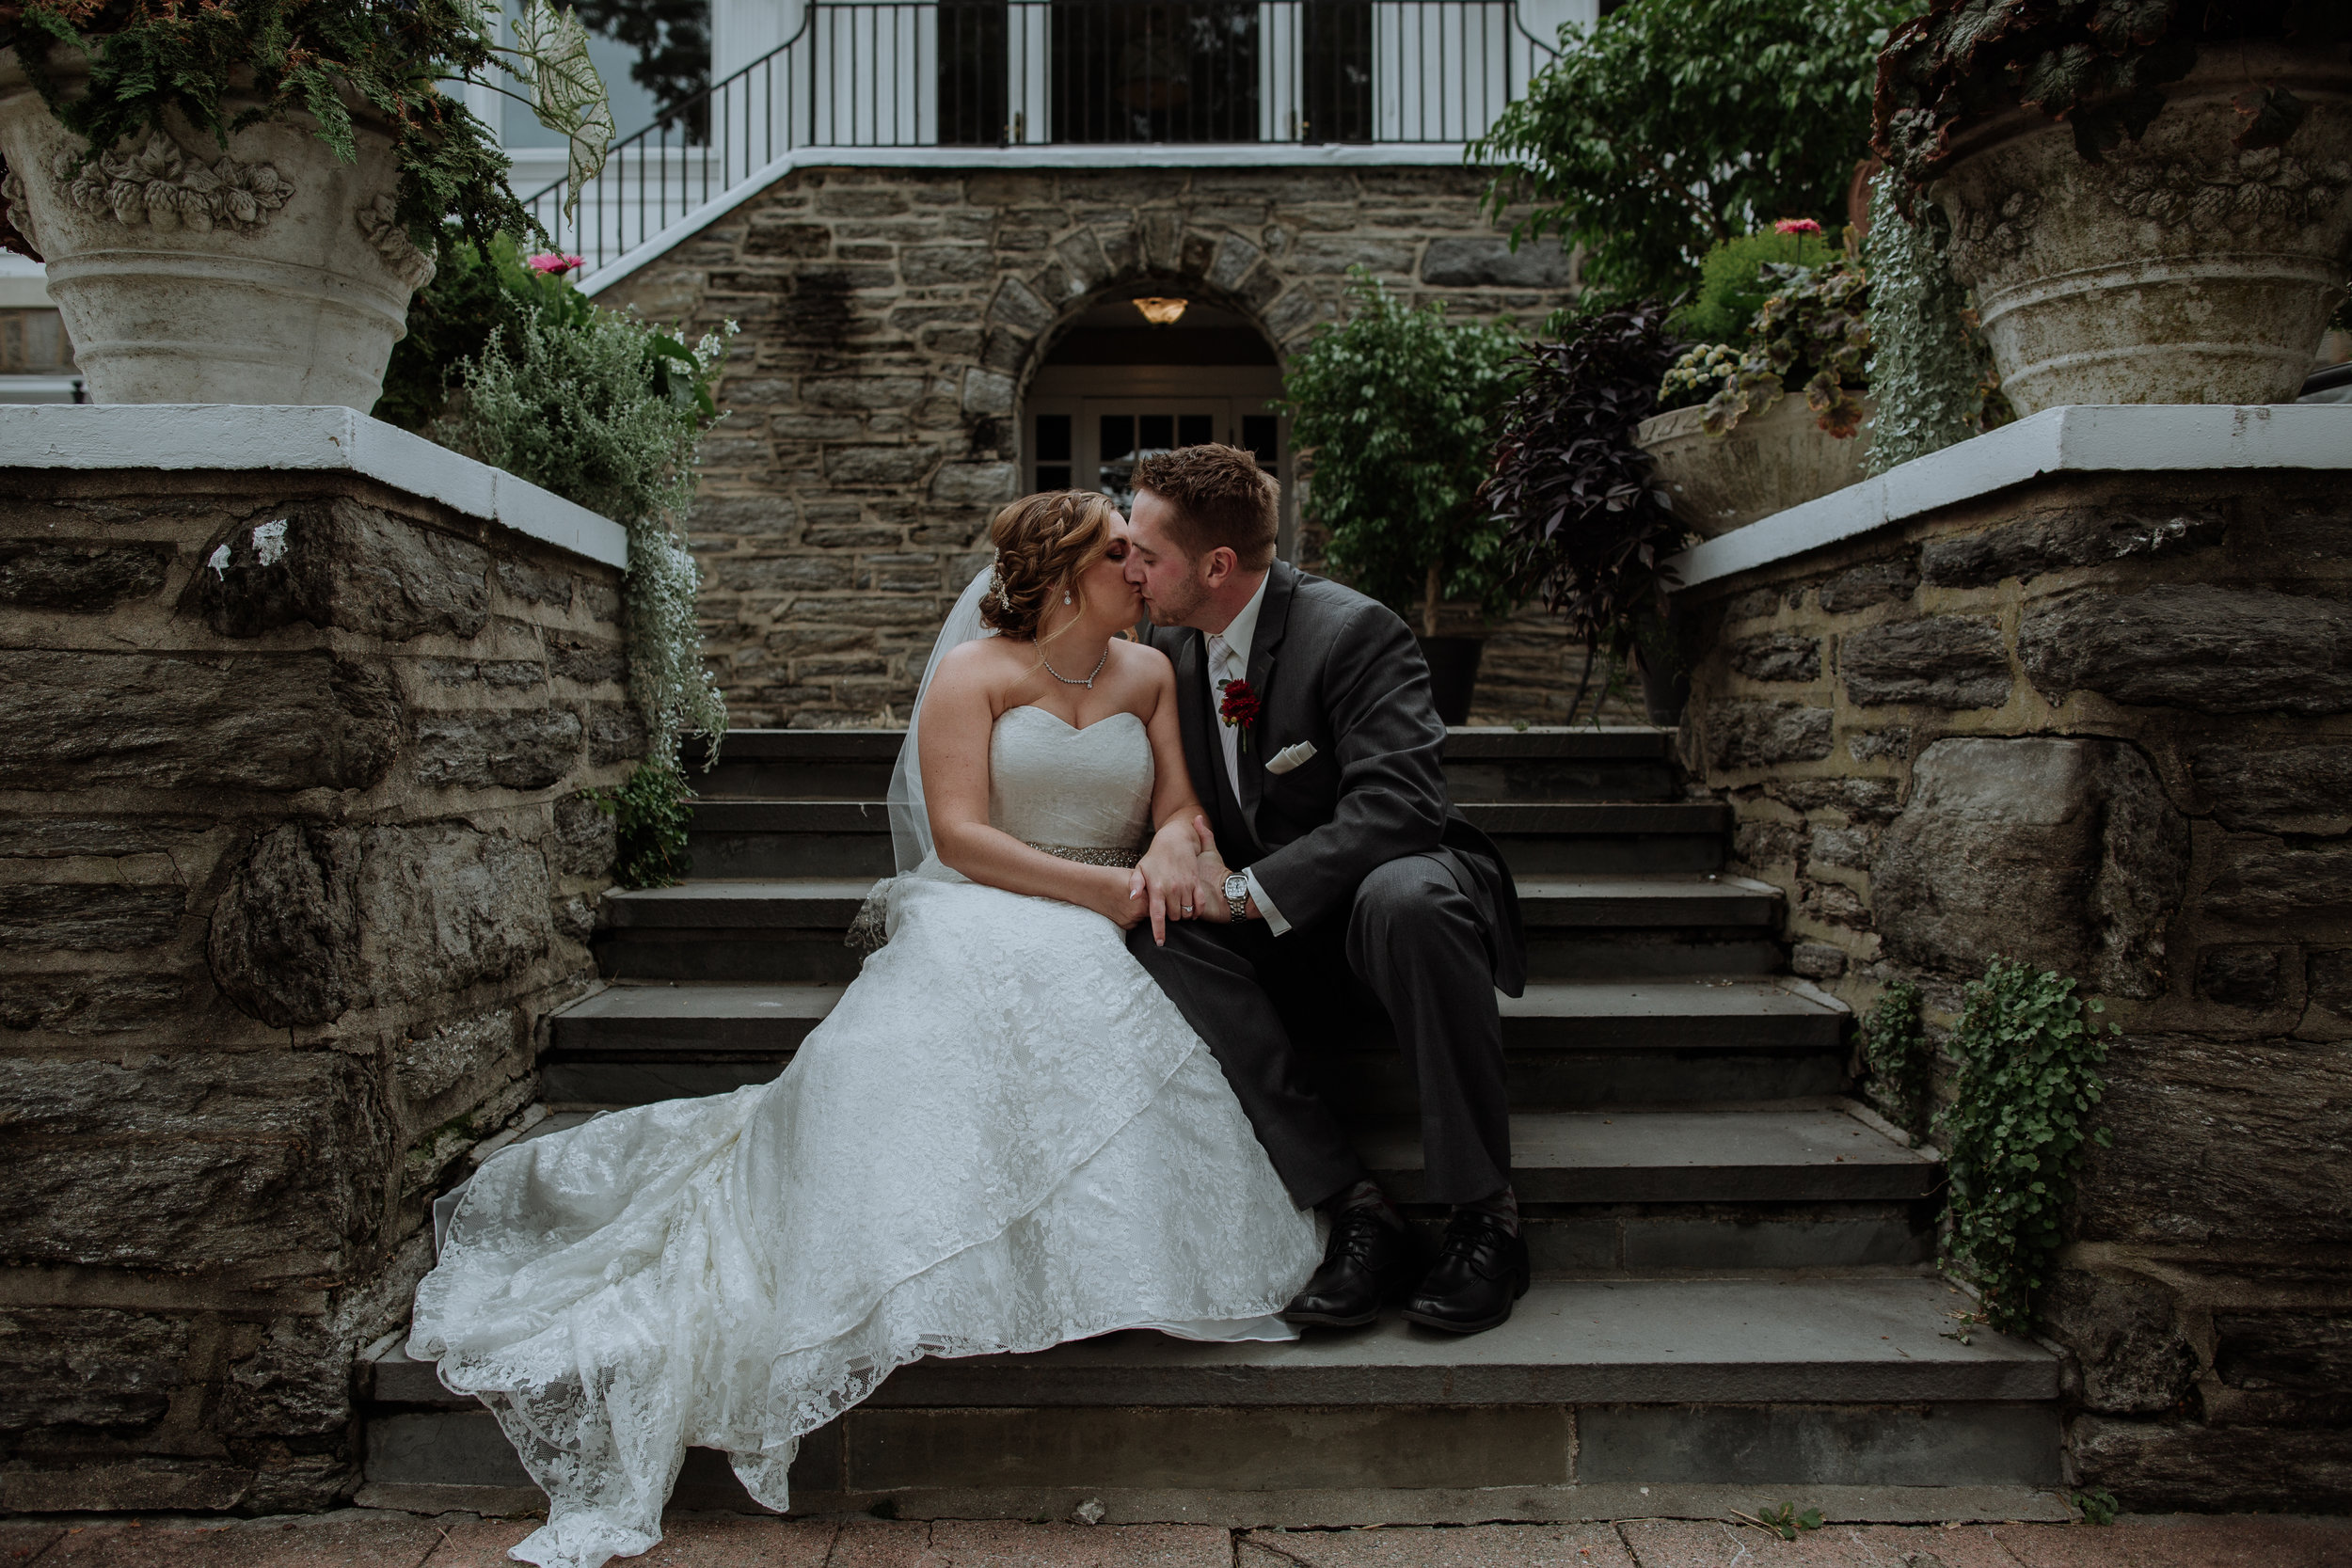 lehigh-valley-photography-manufacturers-golf-club-wedding-2